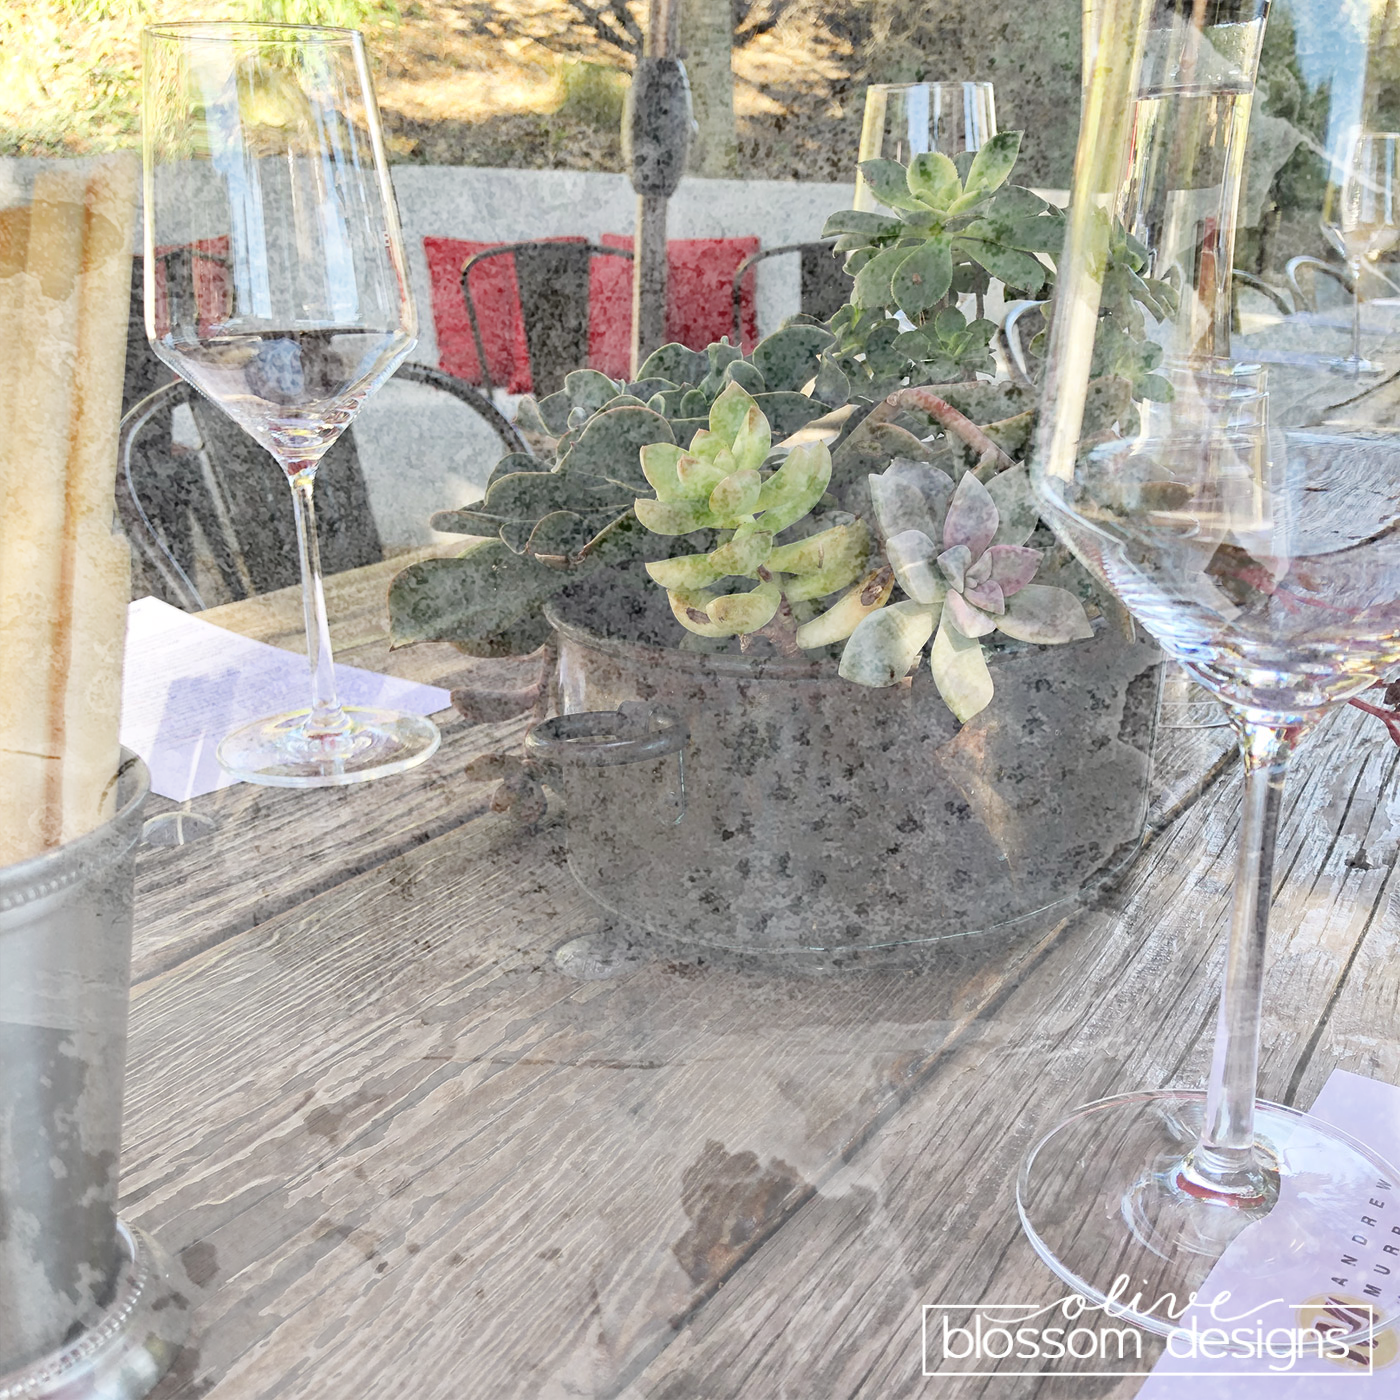 Illustrative Look - I also created this textured photo in Photoshop. This one was way easier. I layered the guard rail texture on top of my wine tasting photo, then used the Screen blend mode option and dropped the opacity down to 68%.